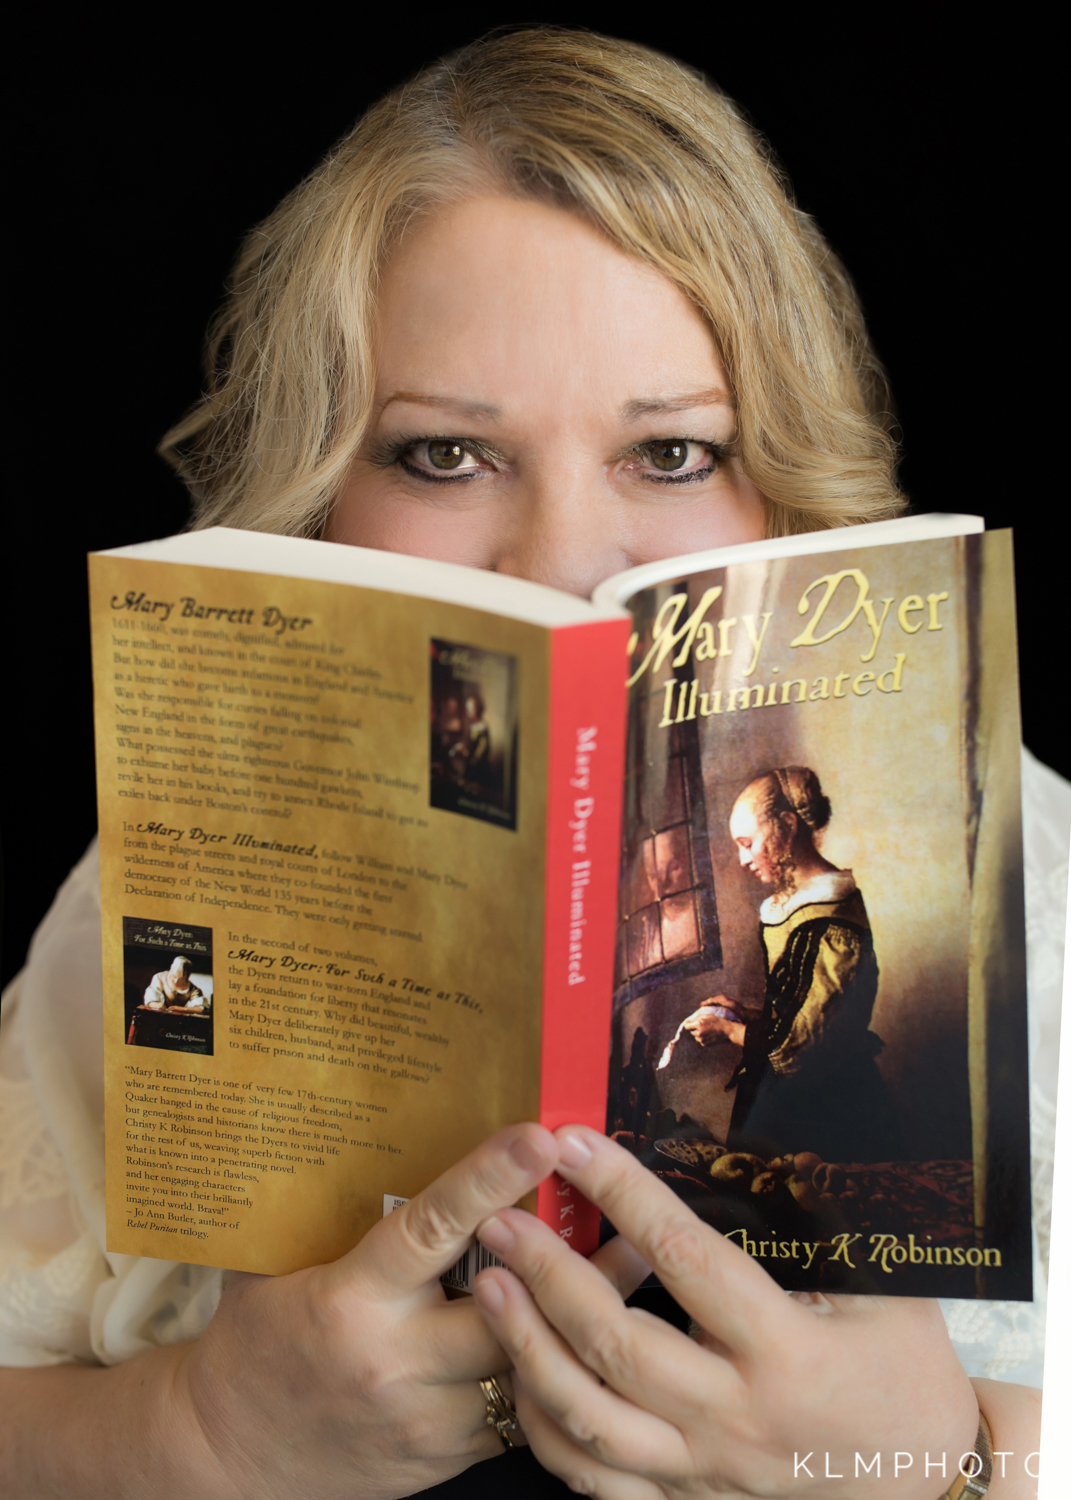 Christy K Robinson Is The Author Of Two (fivestarreviewed) Historical  Novels And One Nonfiction Book Centered On The Mid17thcentury Great  Migration From